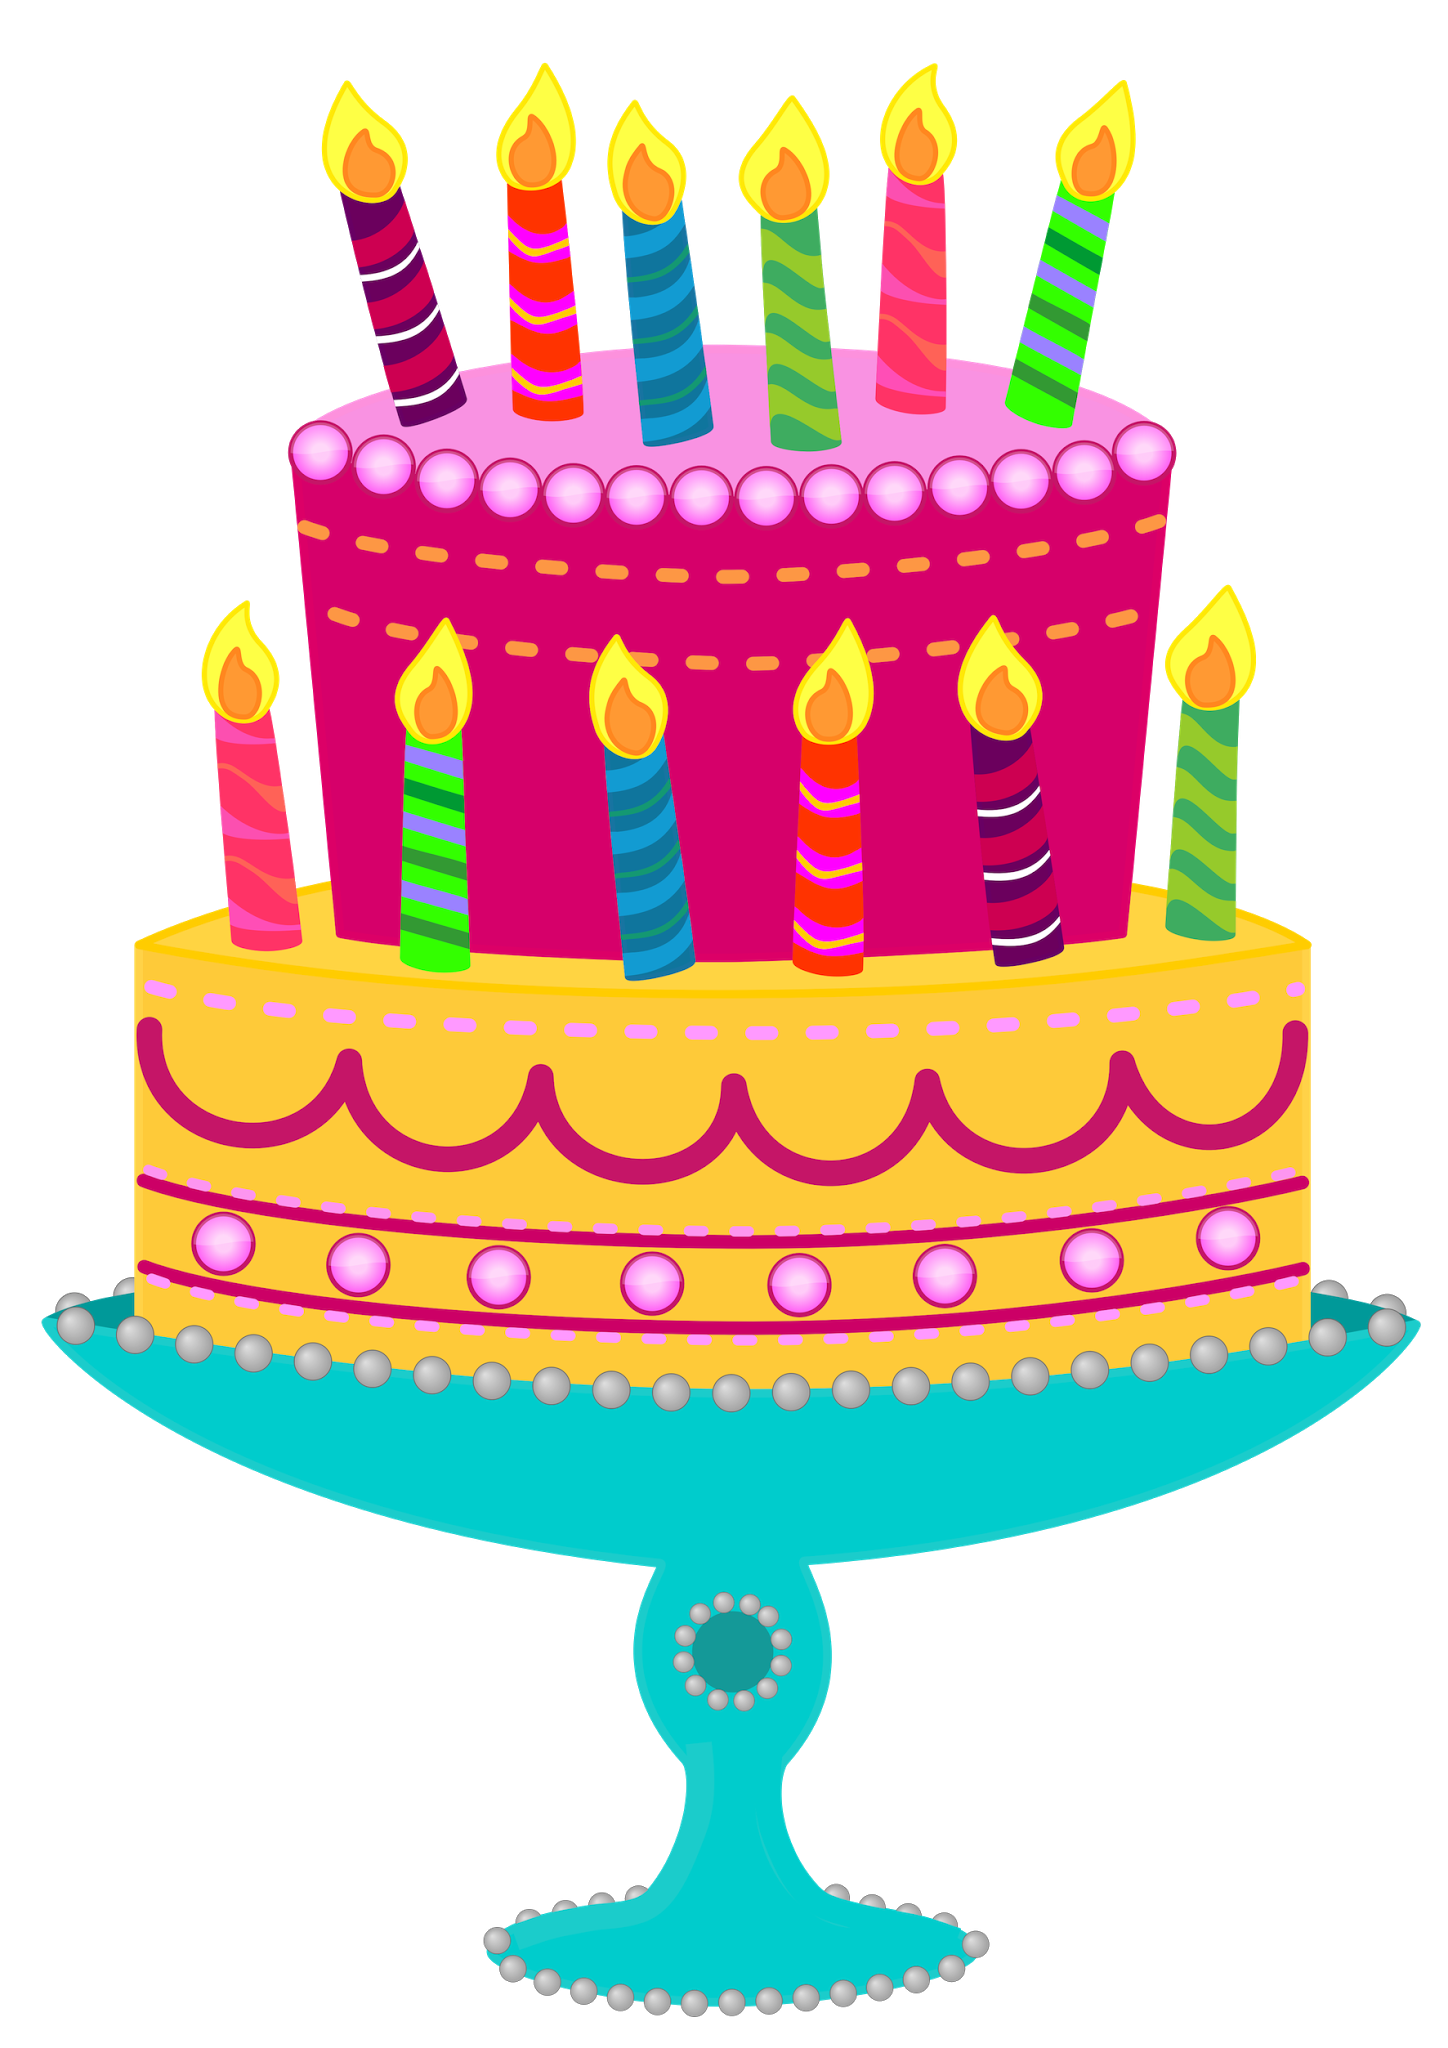 free cake images cliparts co paper images pinterest cake rh pinterest com happy birthday cake clipart transparent happy birthday cake clipart free